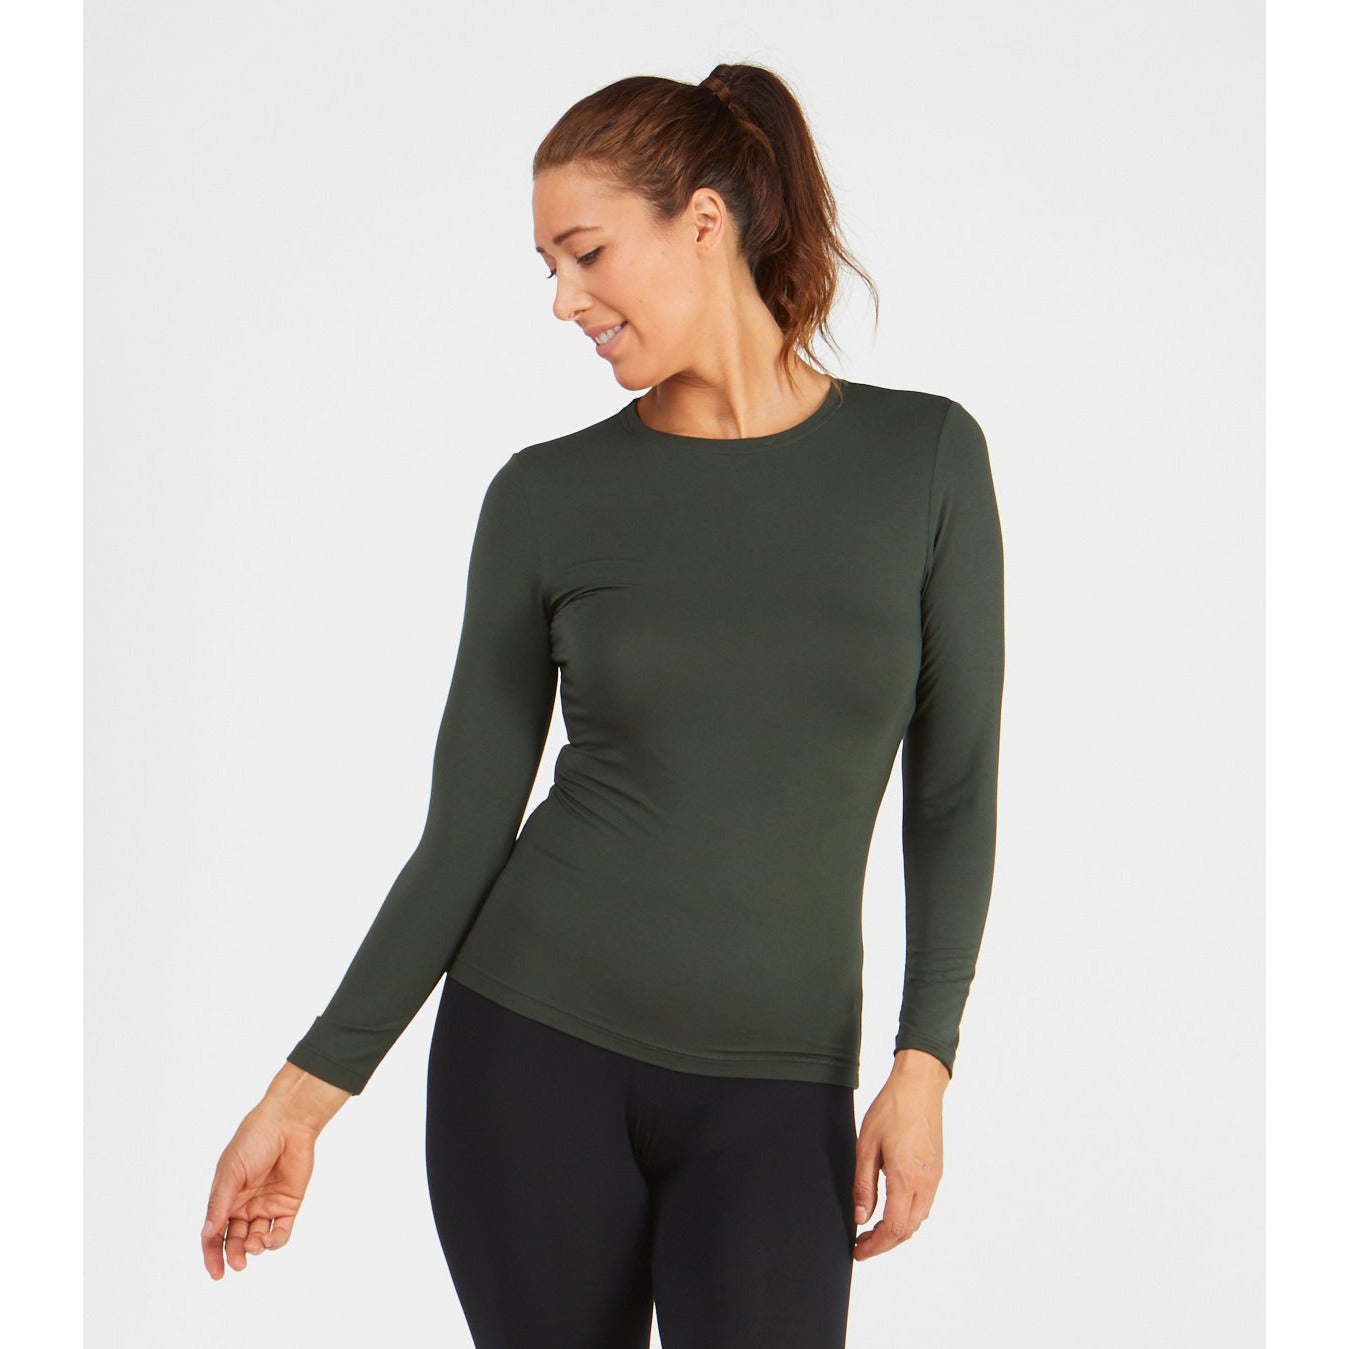 Tani Round neck Long sleeve fitted Tee Top in Plain colours.